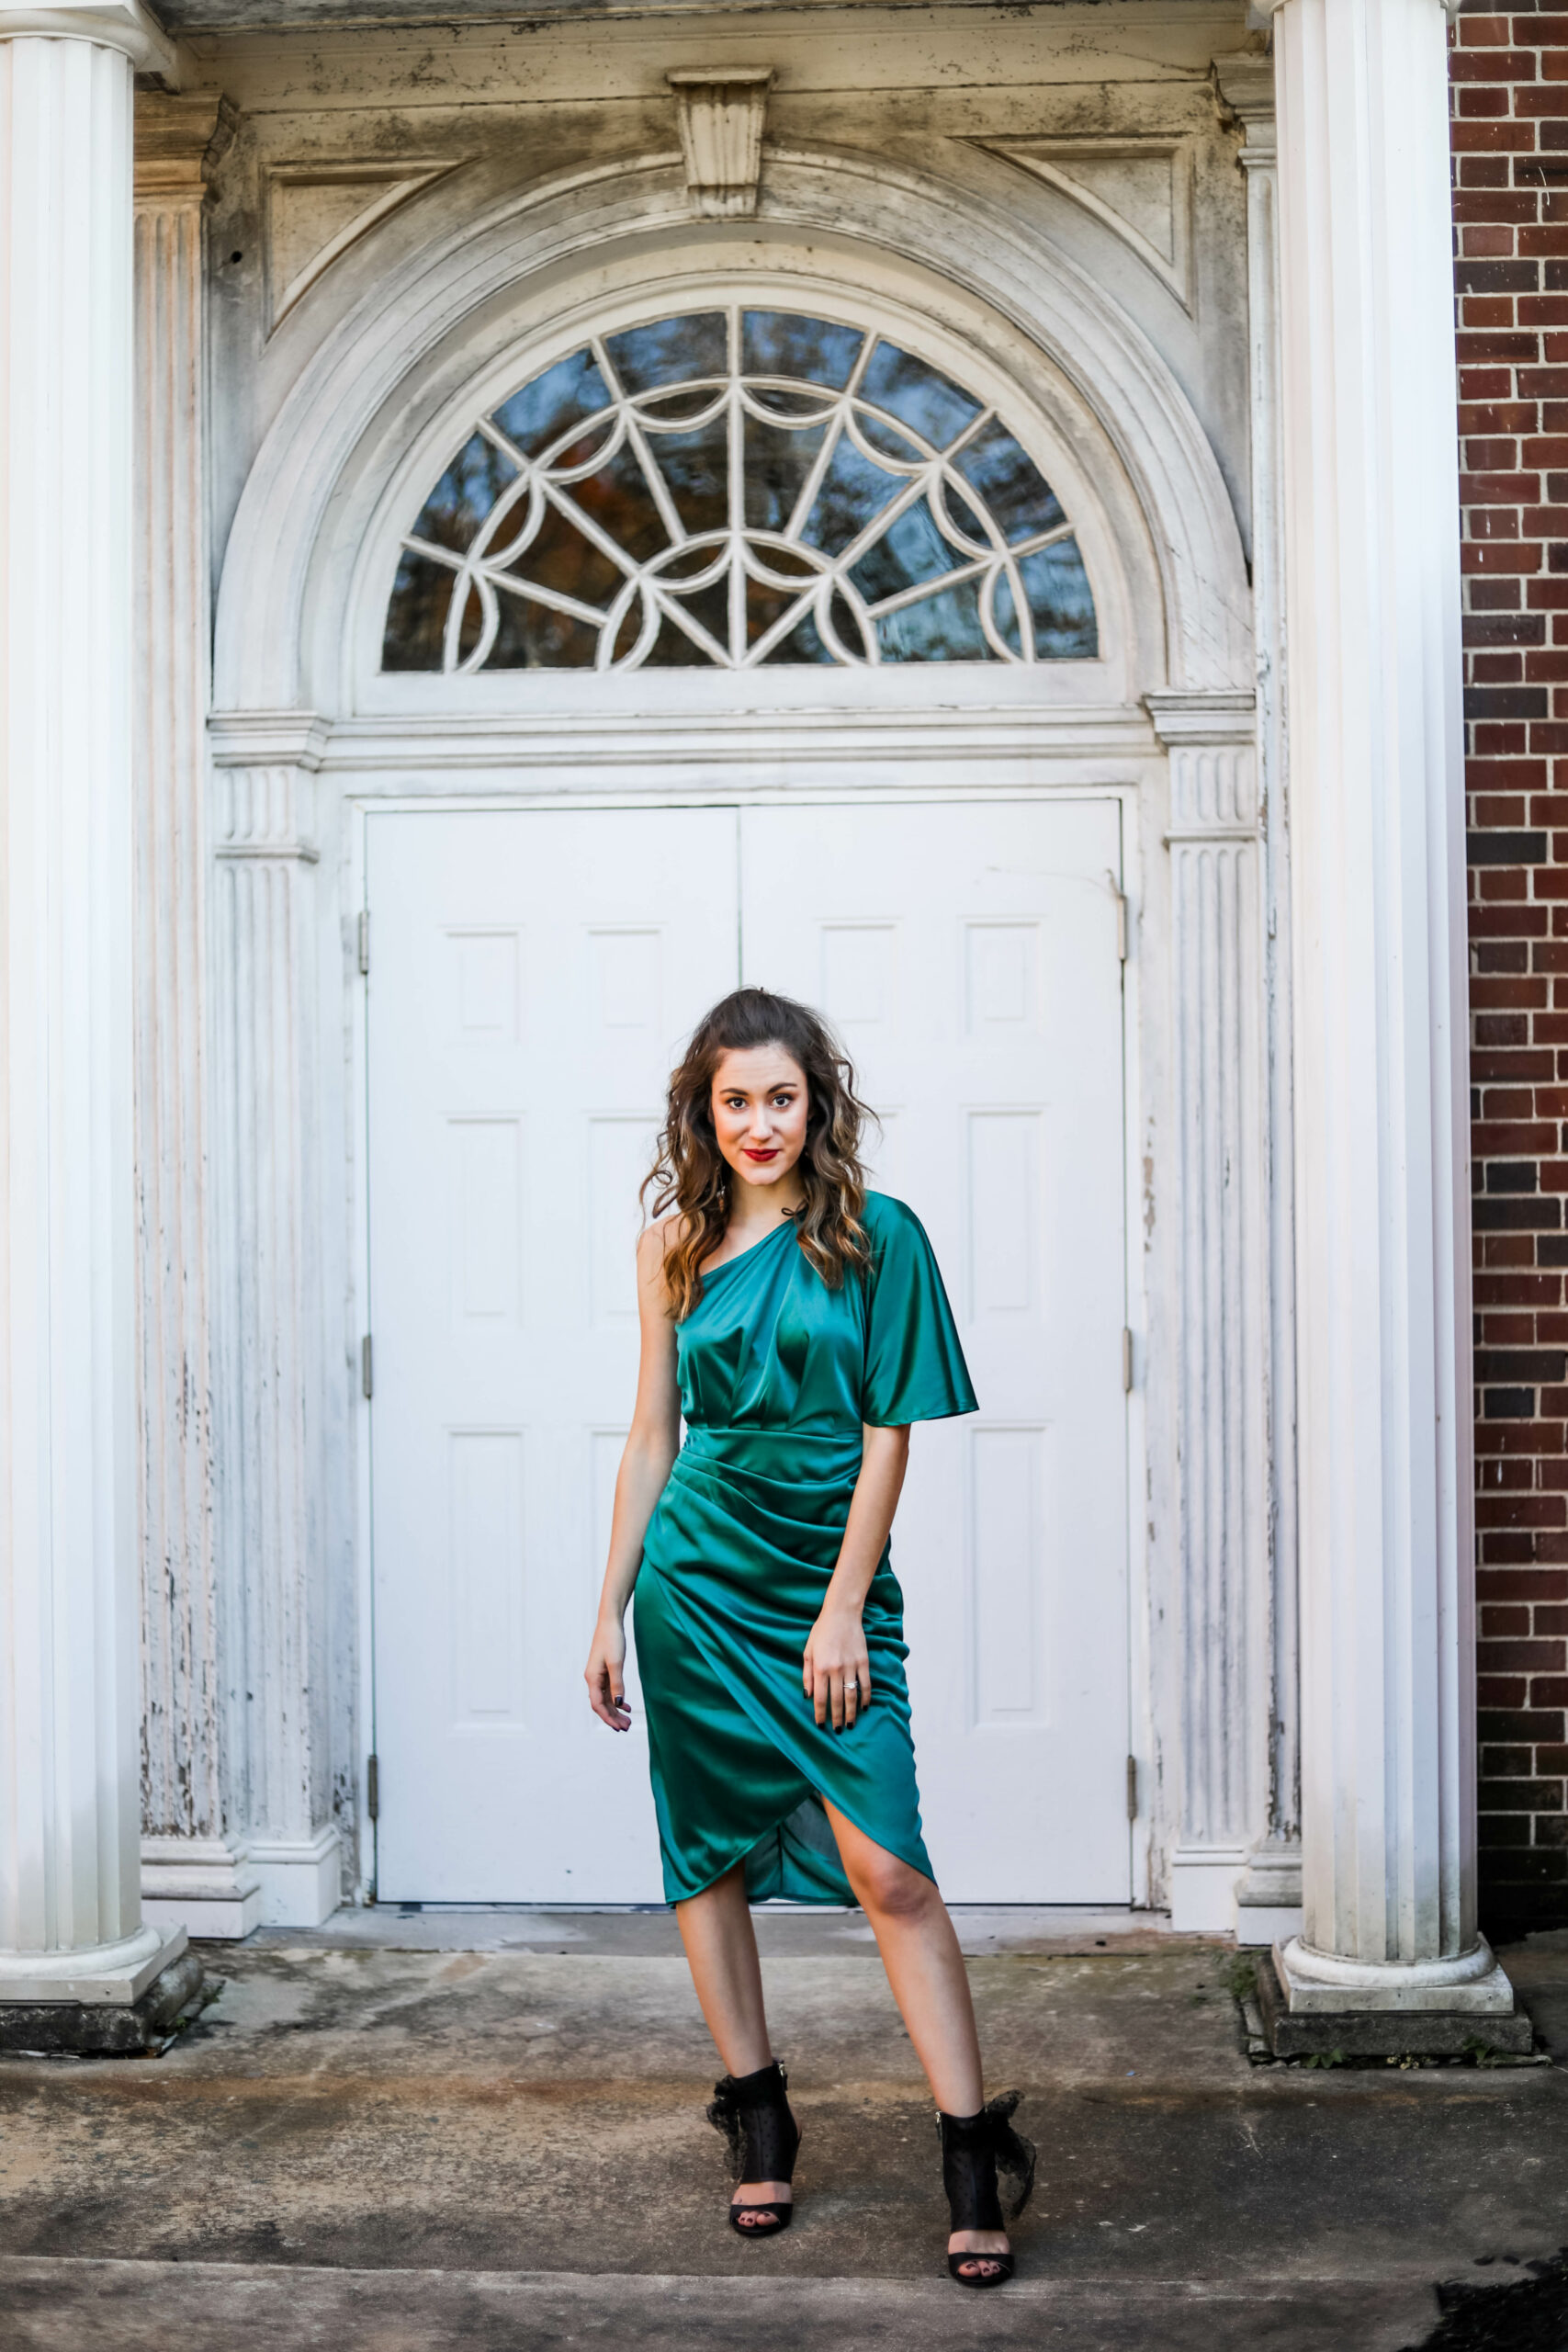 Fall wedding guest dress UNDER $50 - green wedding guest dress on Coming Up Roses